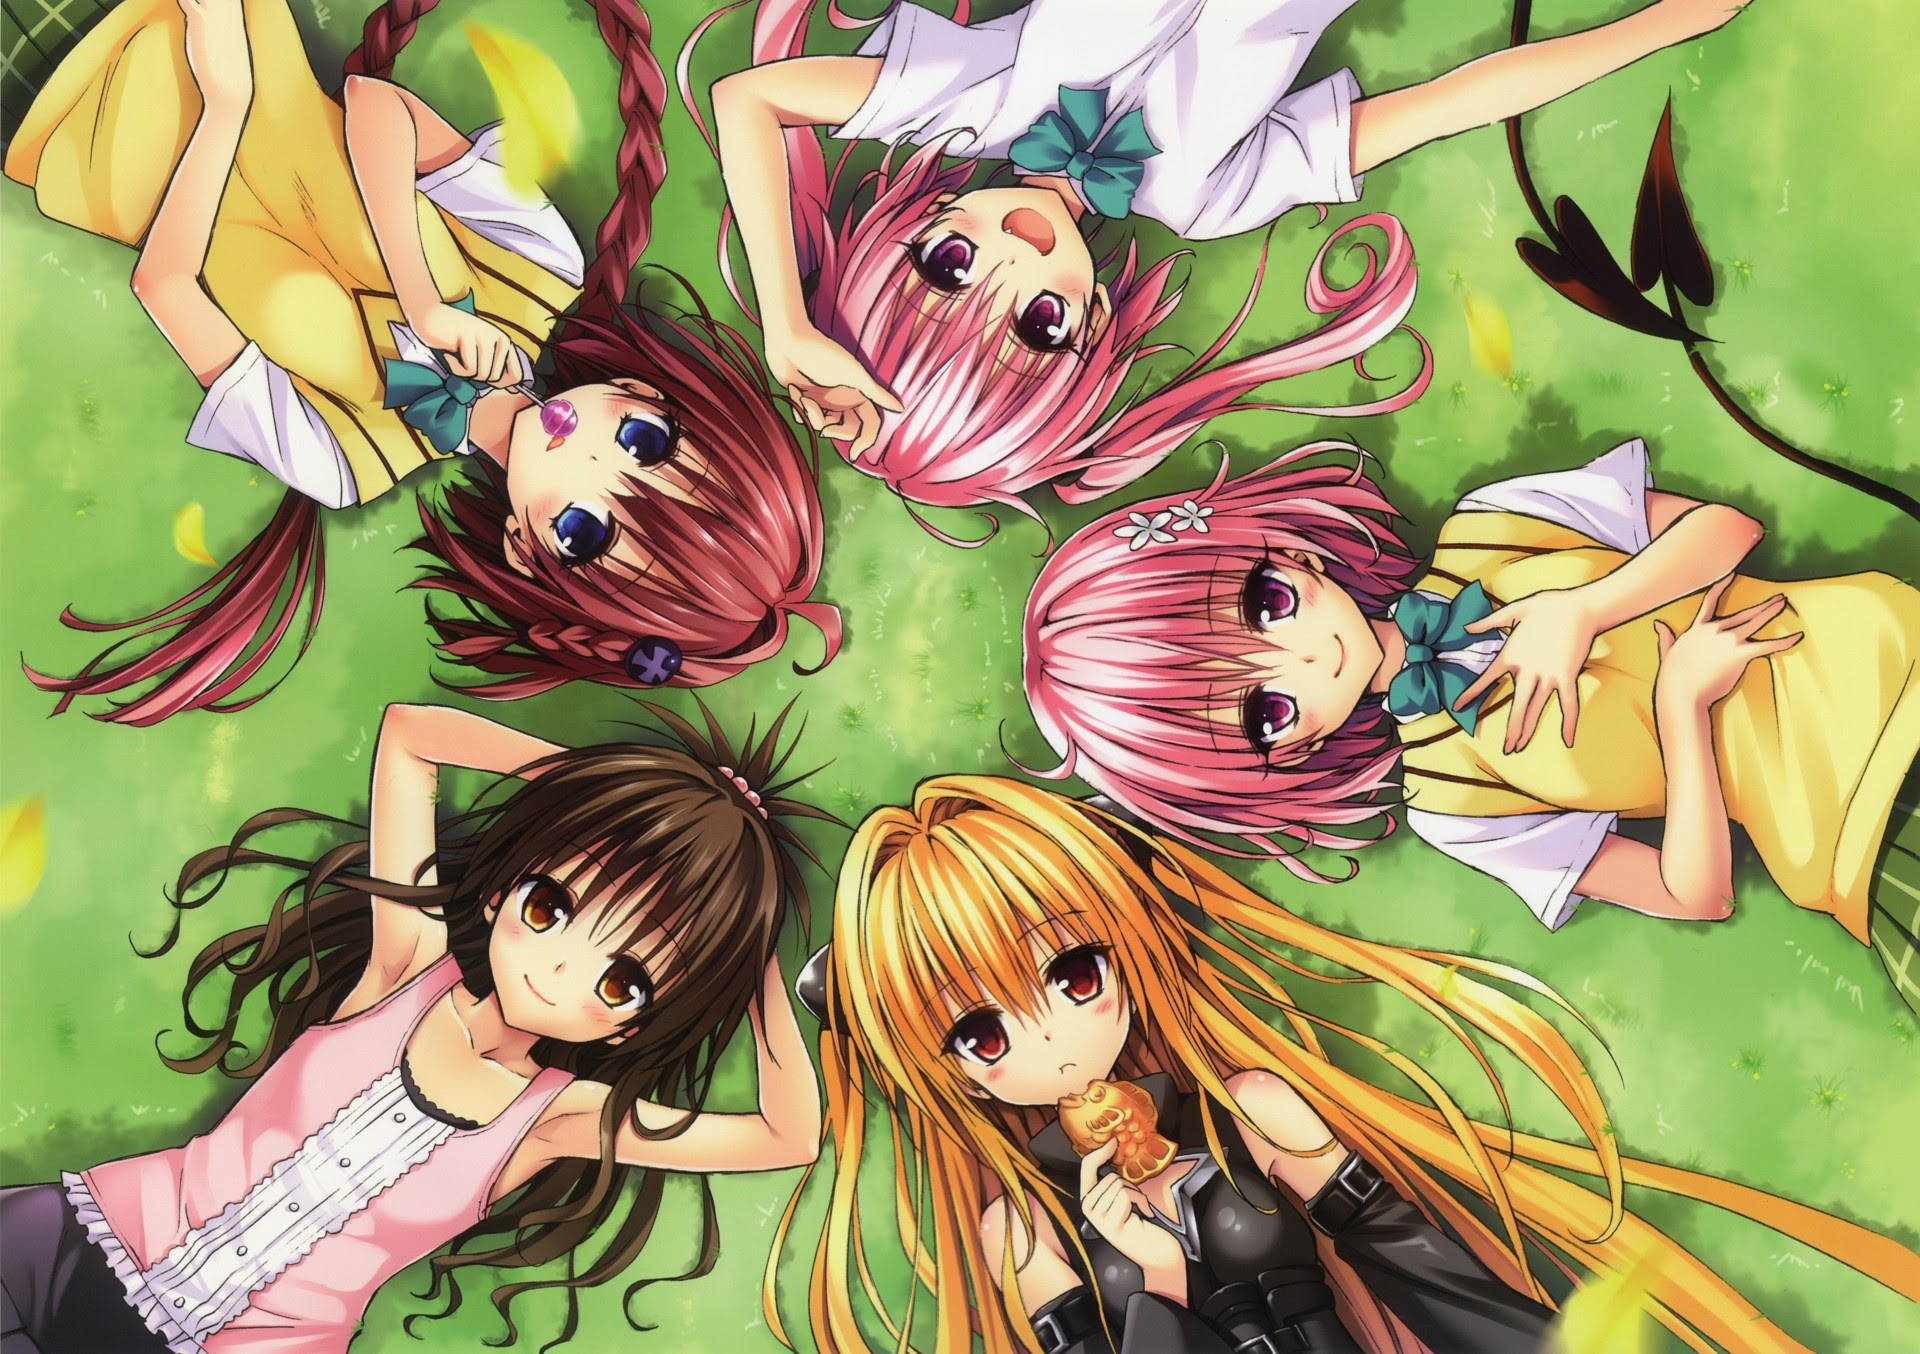 Grass To Love Ru Golden Darkness Seifuku Momo Velia Deviluke Lying